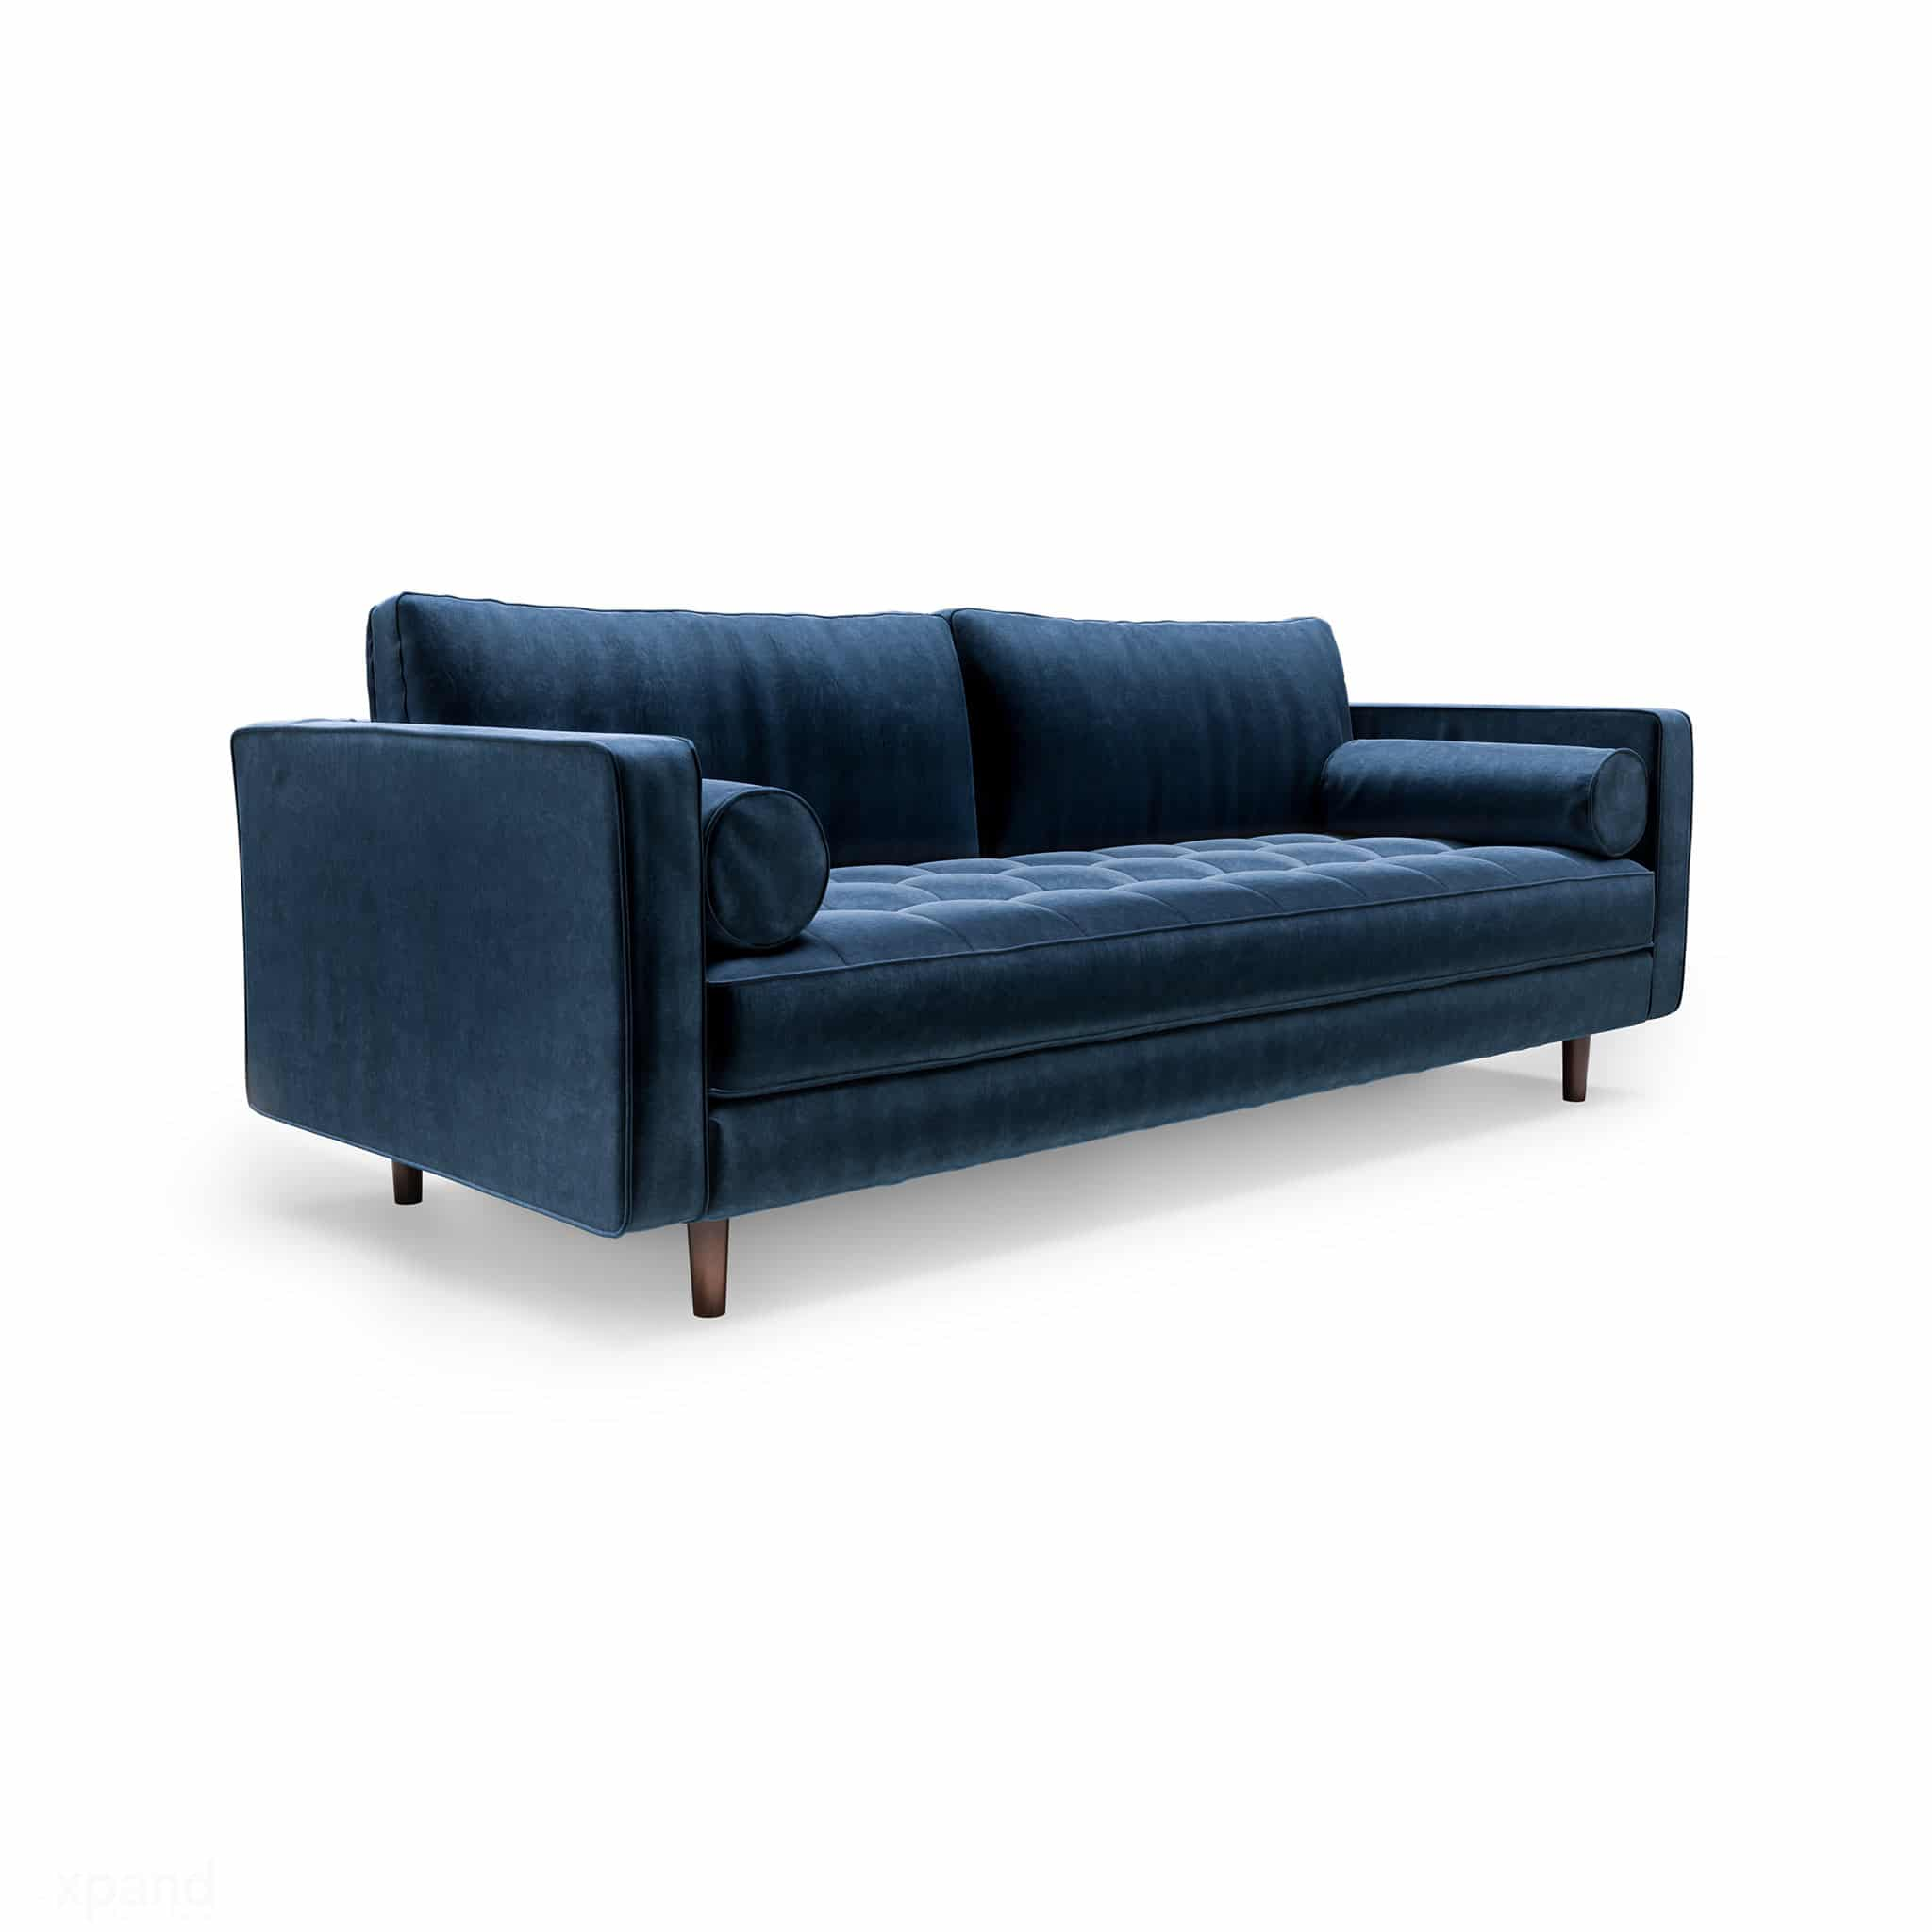 Scandormi Modern Sofa: Navy Blue mid-century tufted couch | Expand ...